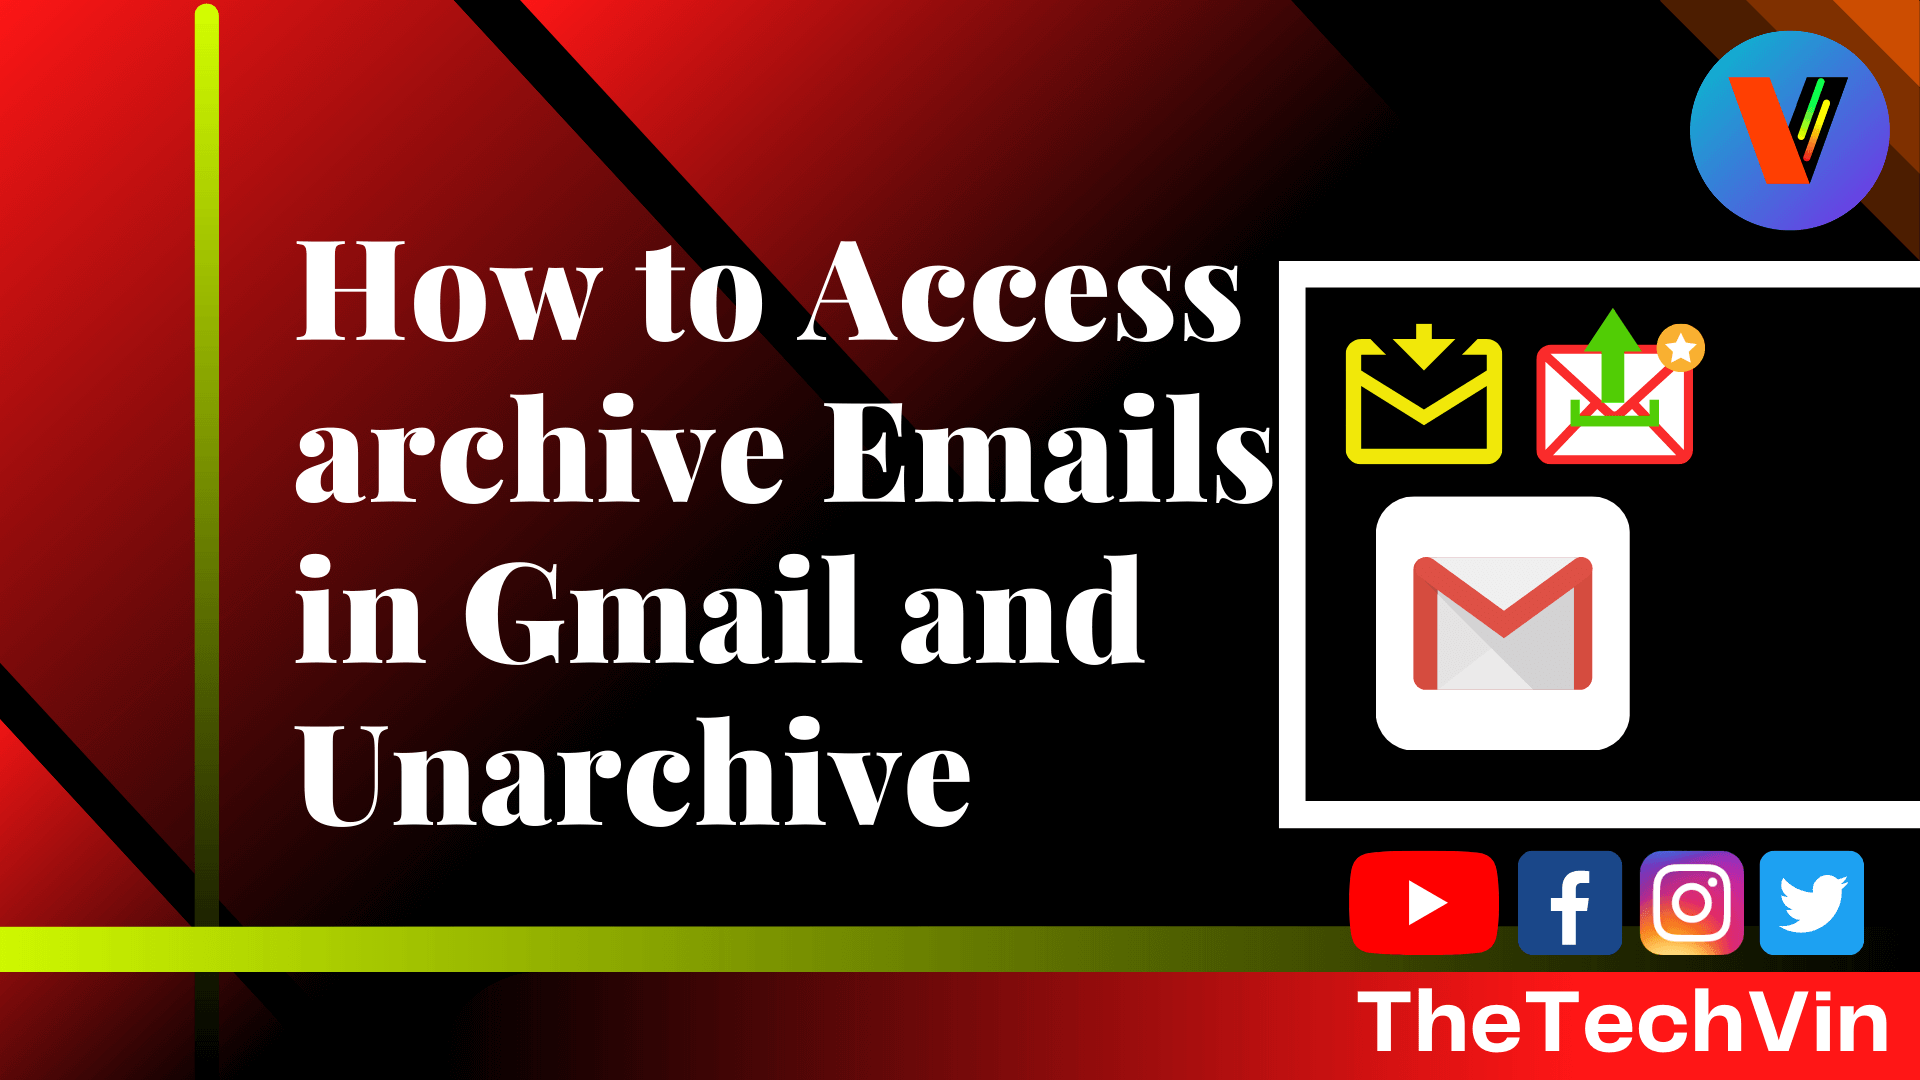 How to Access Archive Emails in Gmail and unarchive them